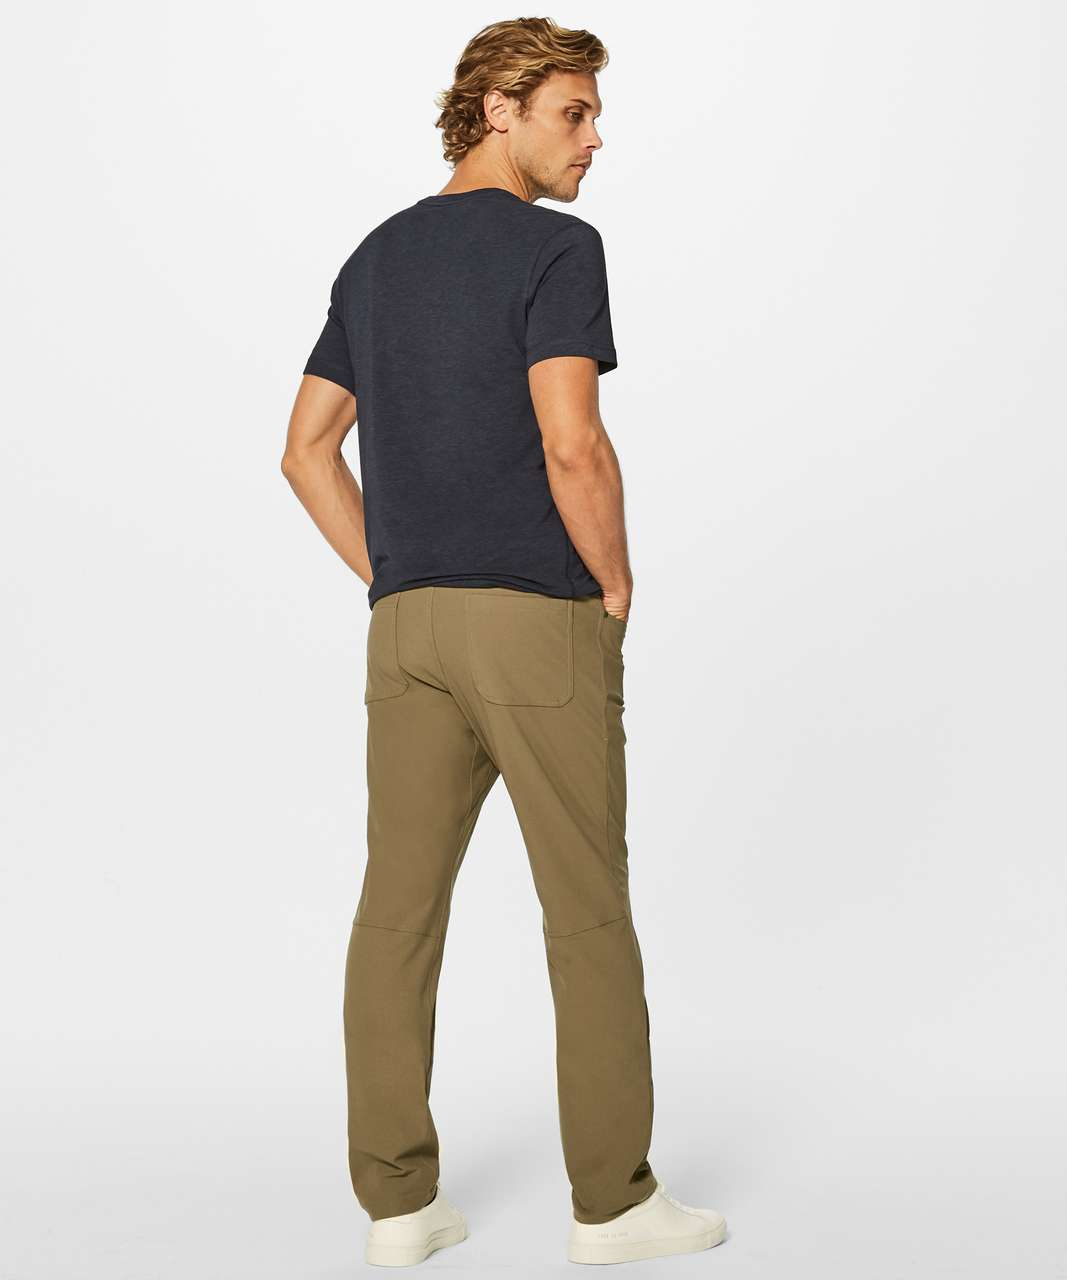 "Lululemon ABC Pant Classic 37"" - Artifact"